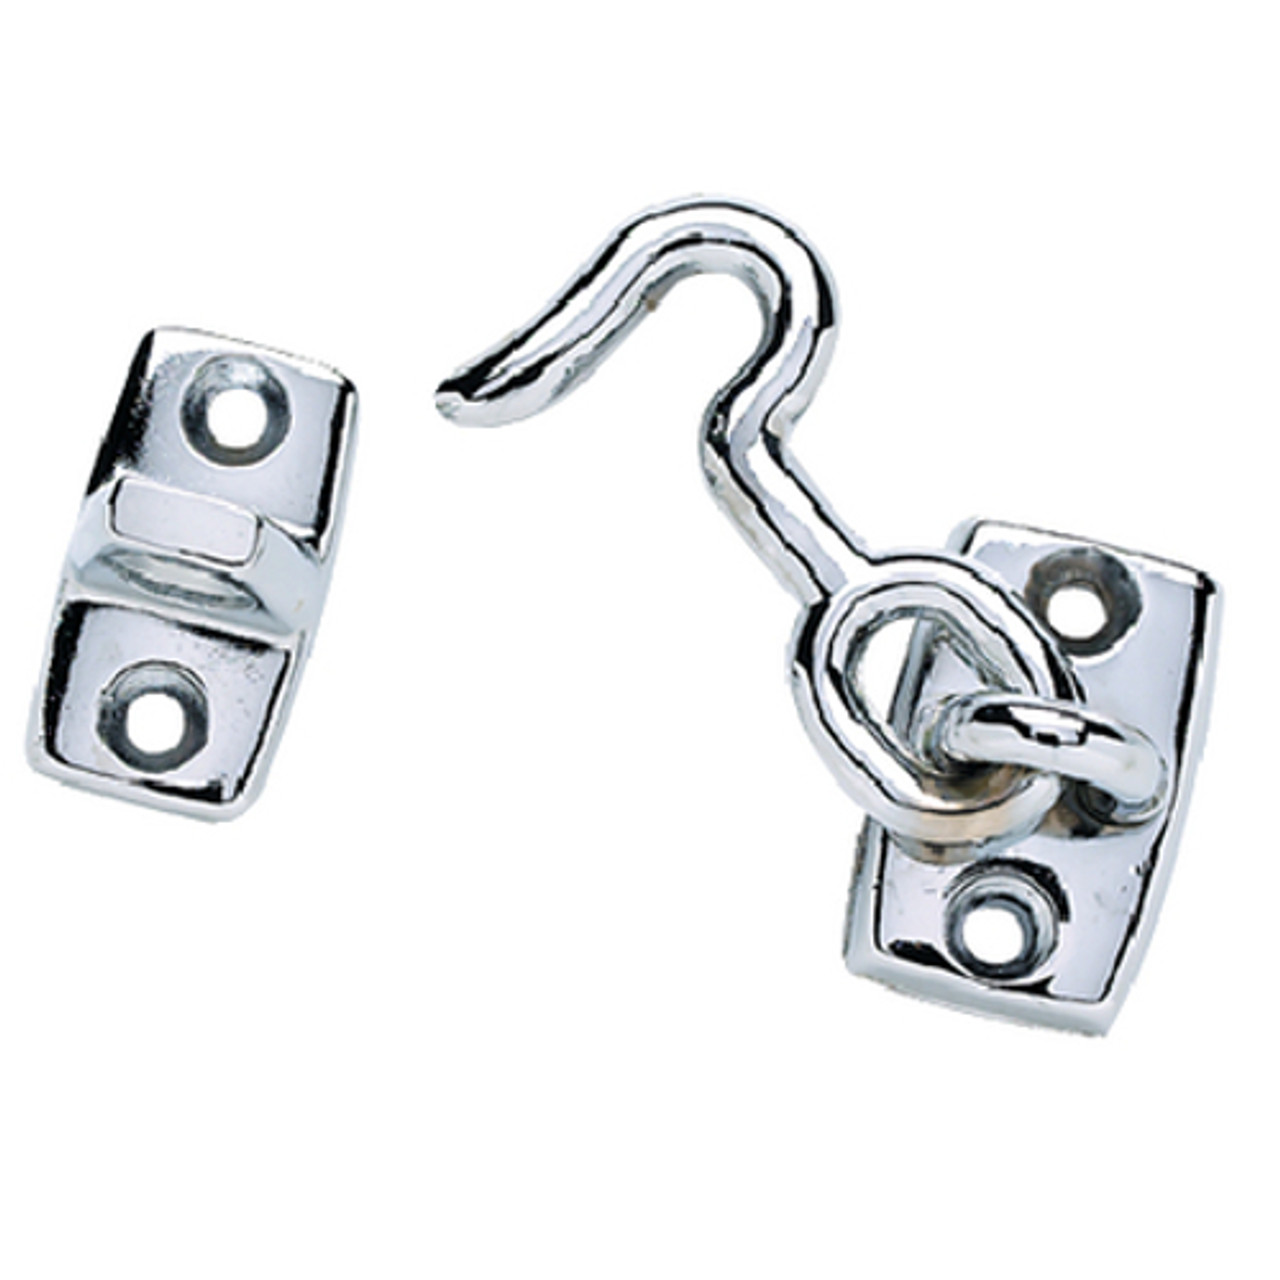 1-3/4 Inch Chrome Plated Zinc Cabin Door Hook for Boats, RVs and More